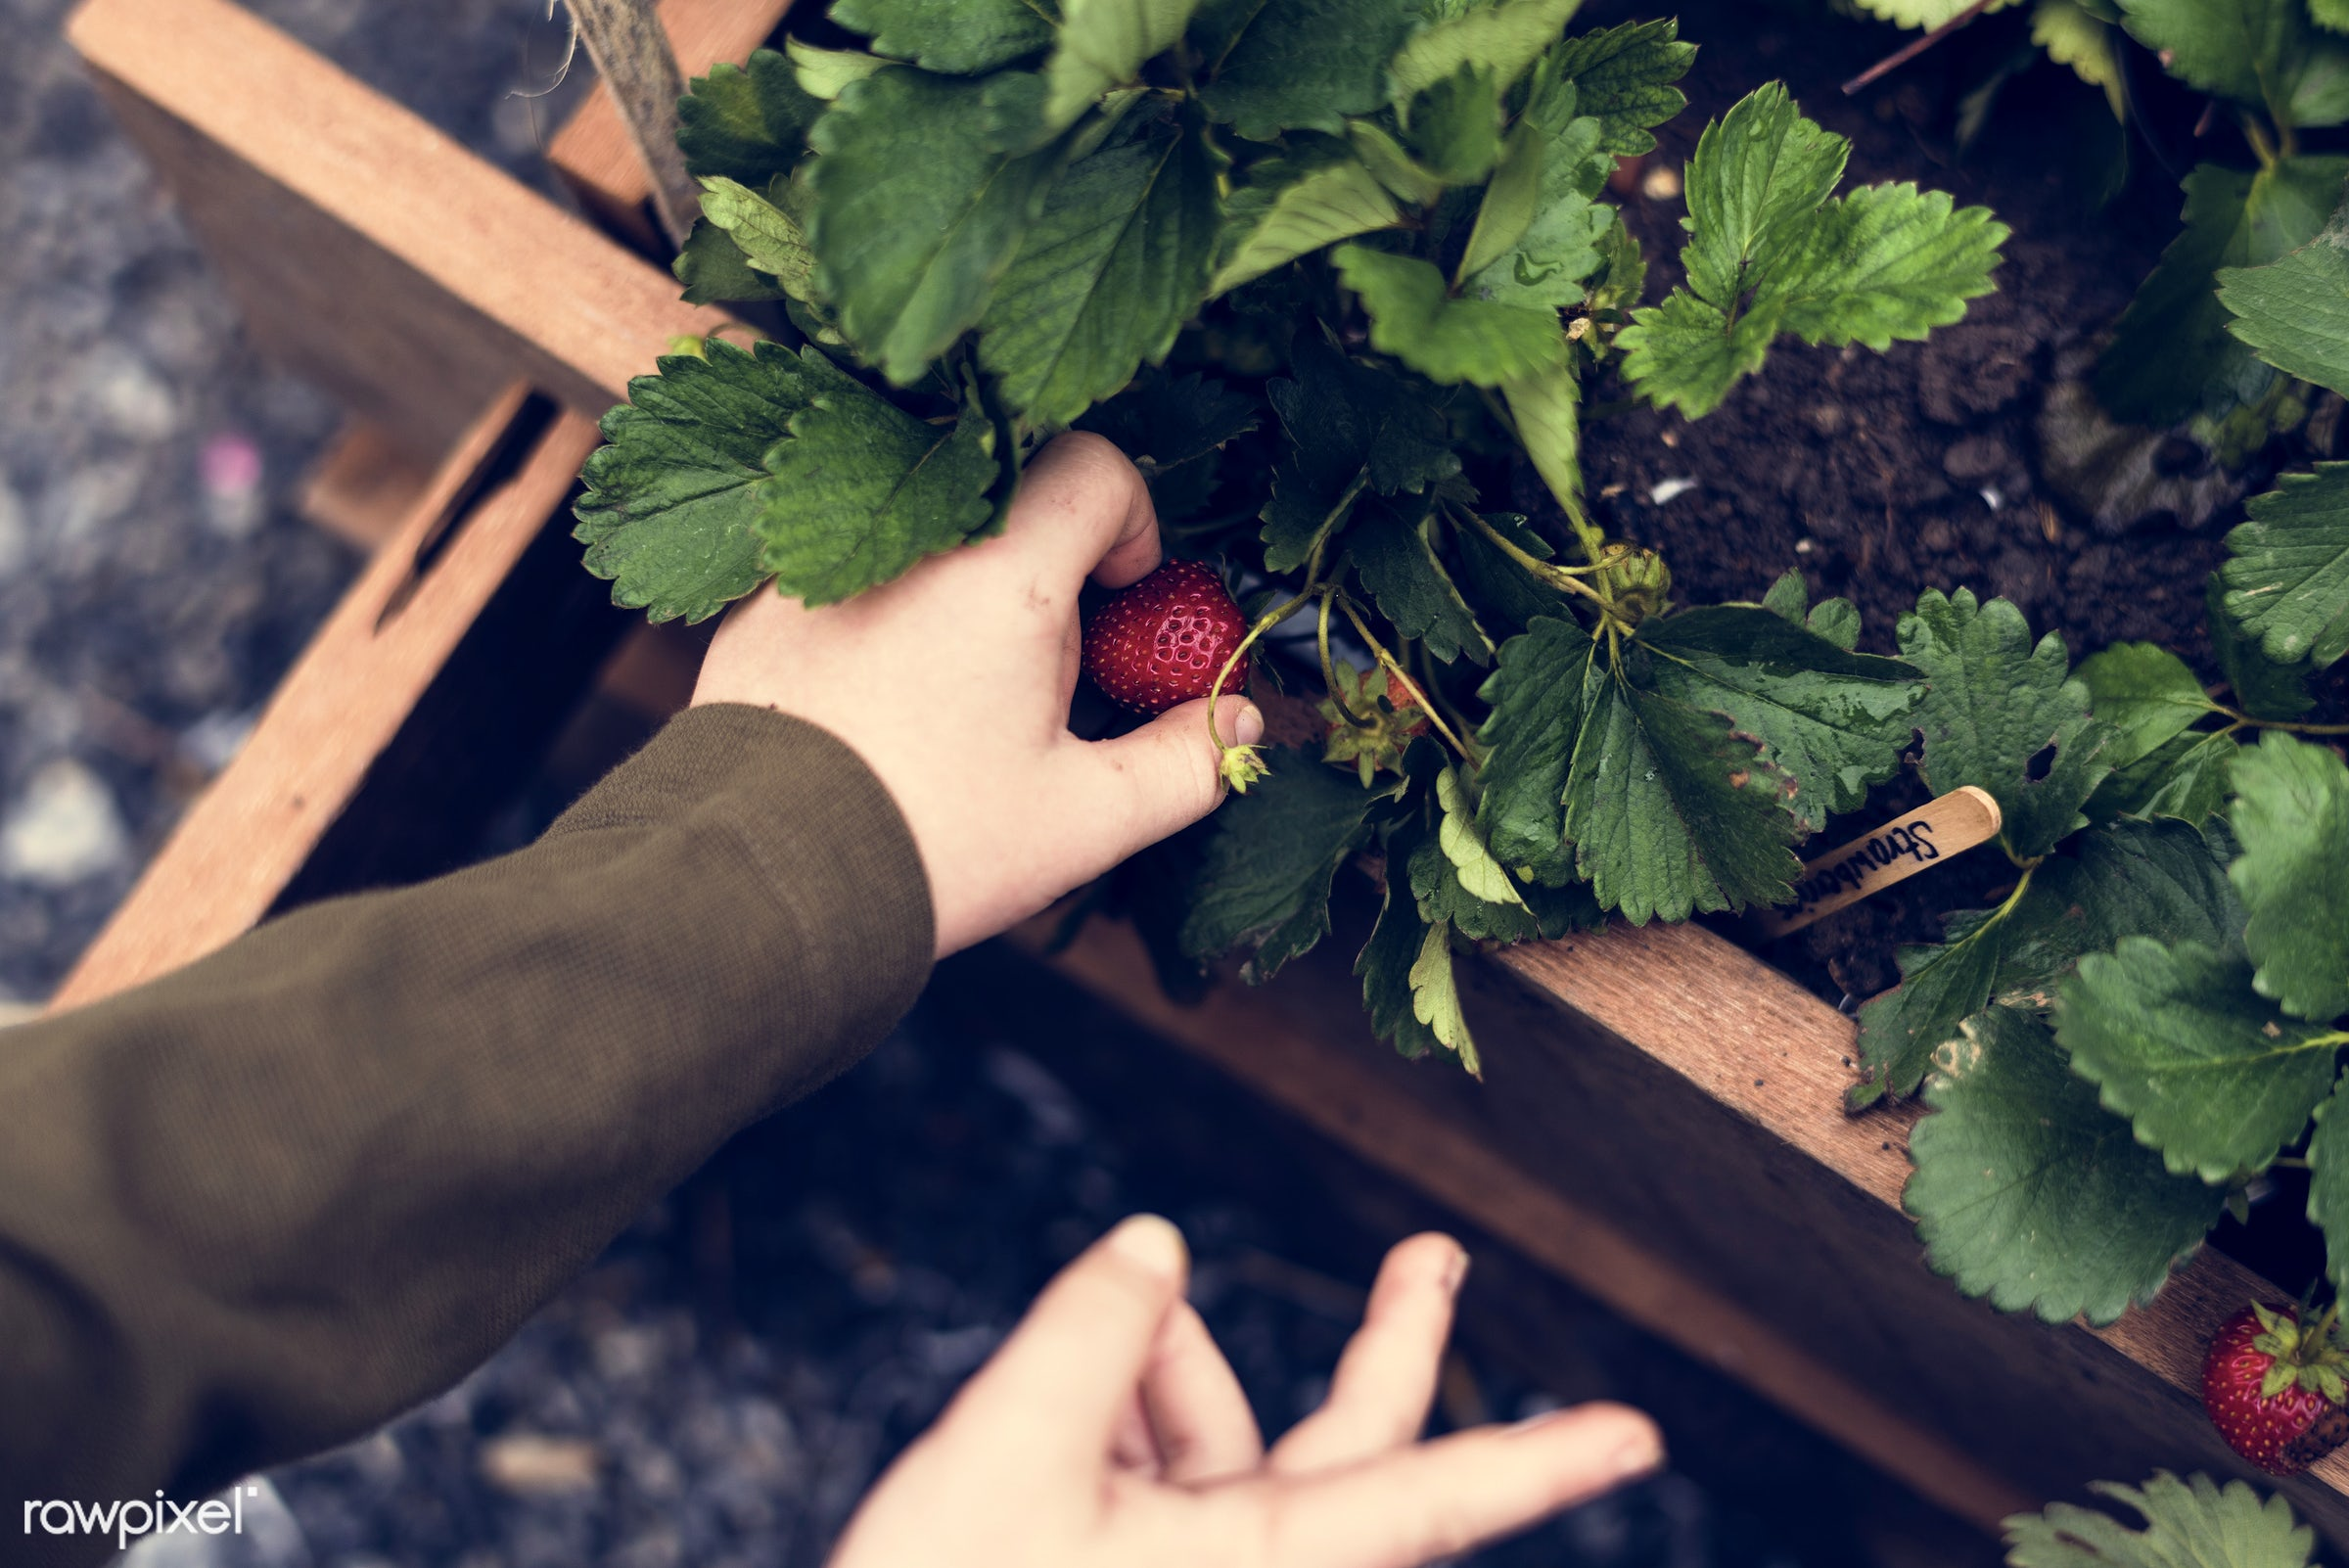 plant, person, plants, show, leaves, people, hand, farm, berry, tree, farmer, fresh, hands, wooden box, fruits, planting,...